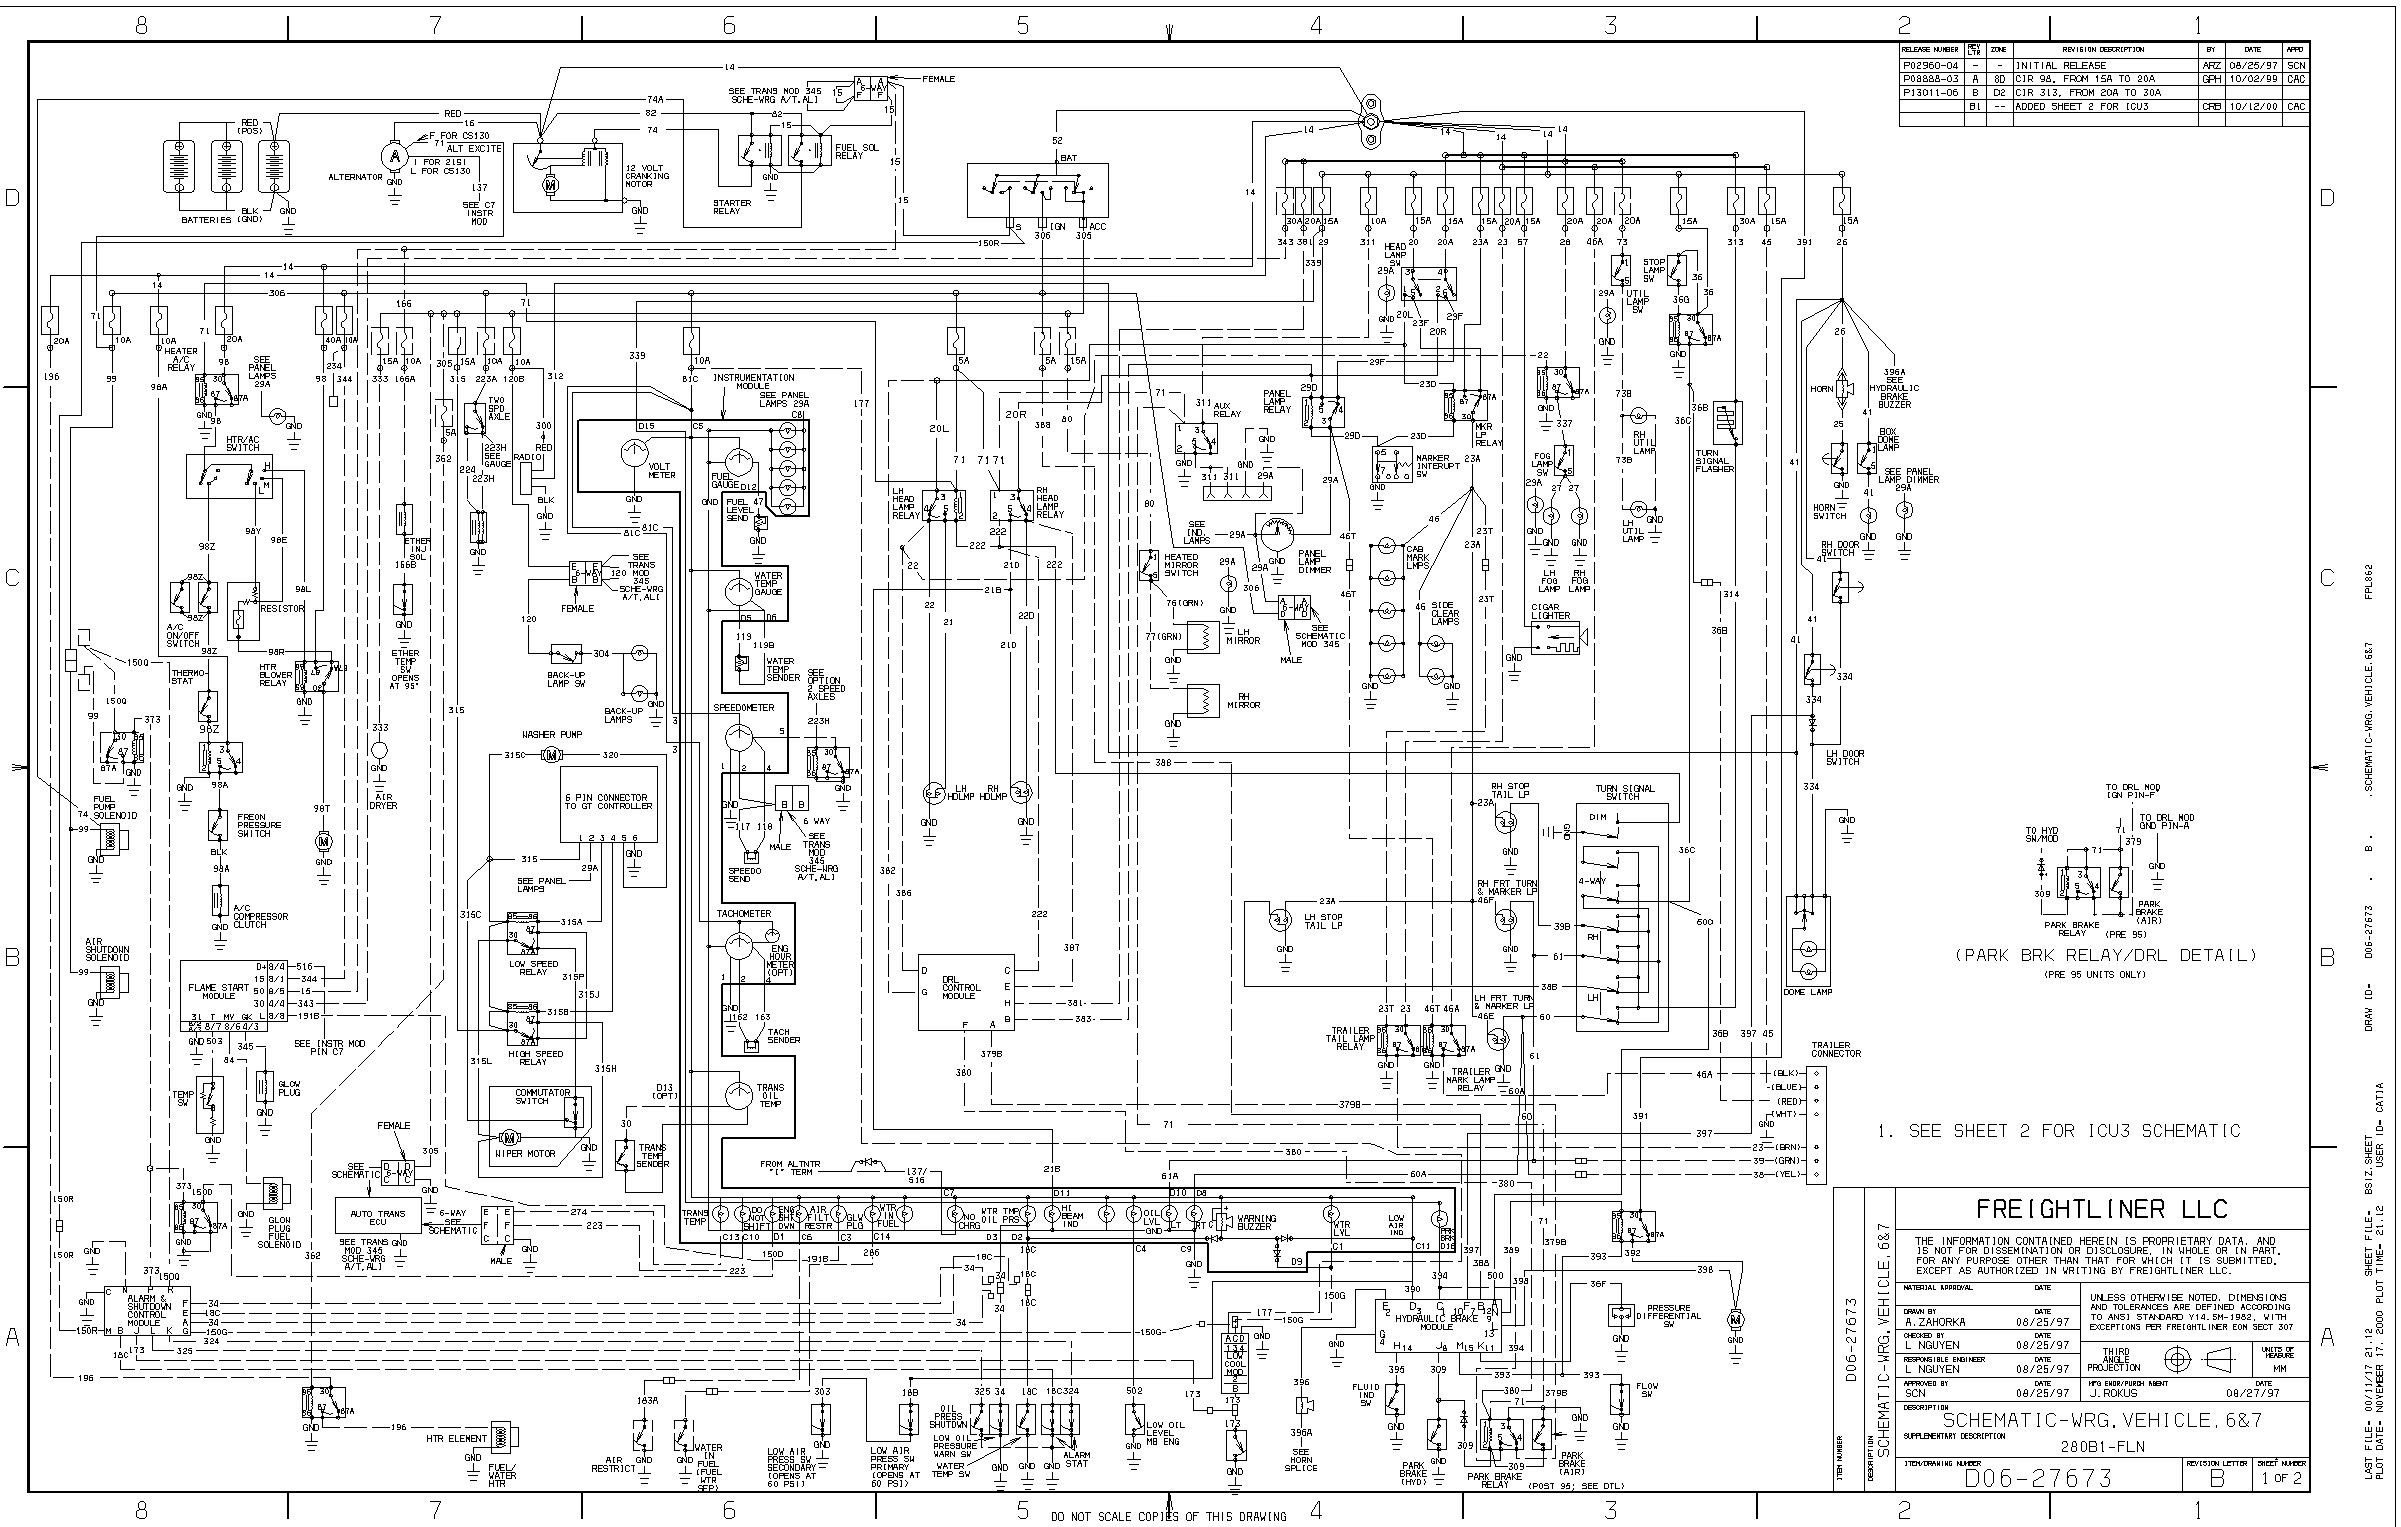 Fl70 Freightliner Stop Lamp Diagram I Have 2003 Fl70 Freightliner and I Need A Wiring Diagram